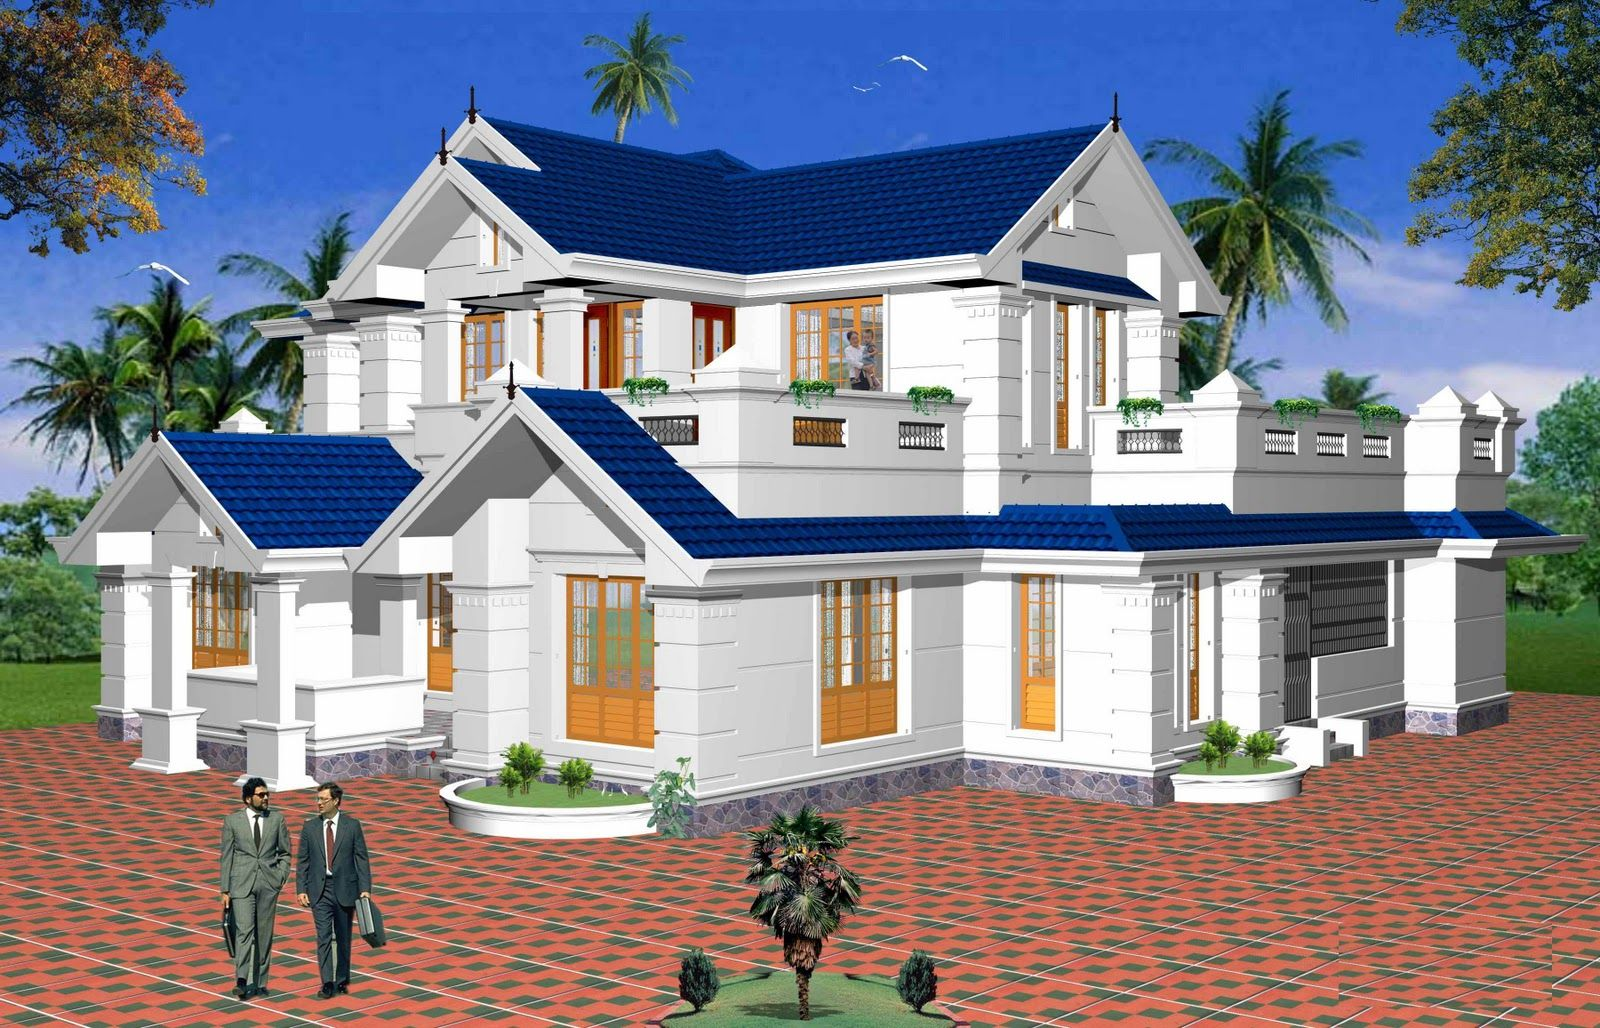 Architectural+Designs | Types House Plans : Architectural Design « ApnaGhar